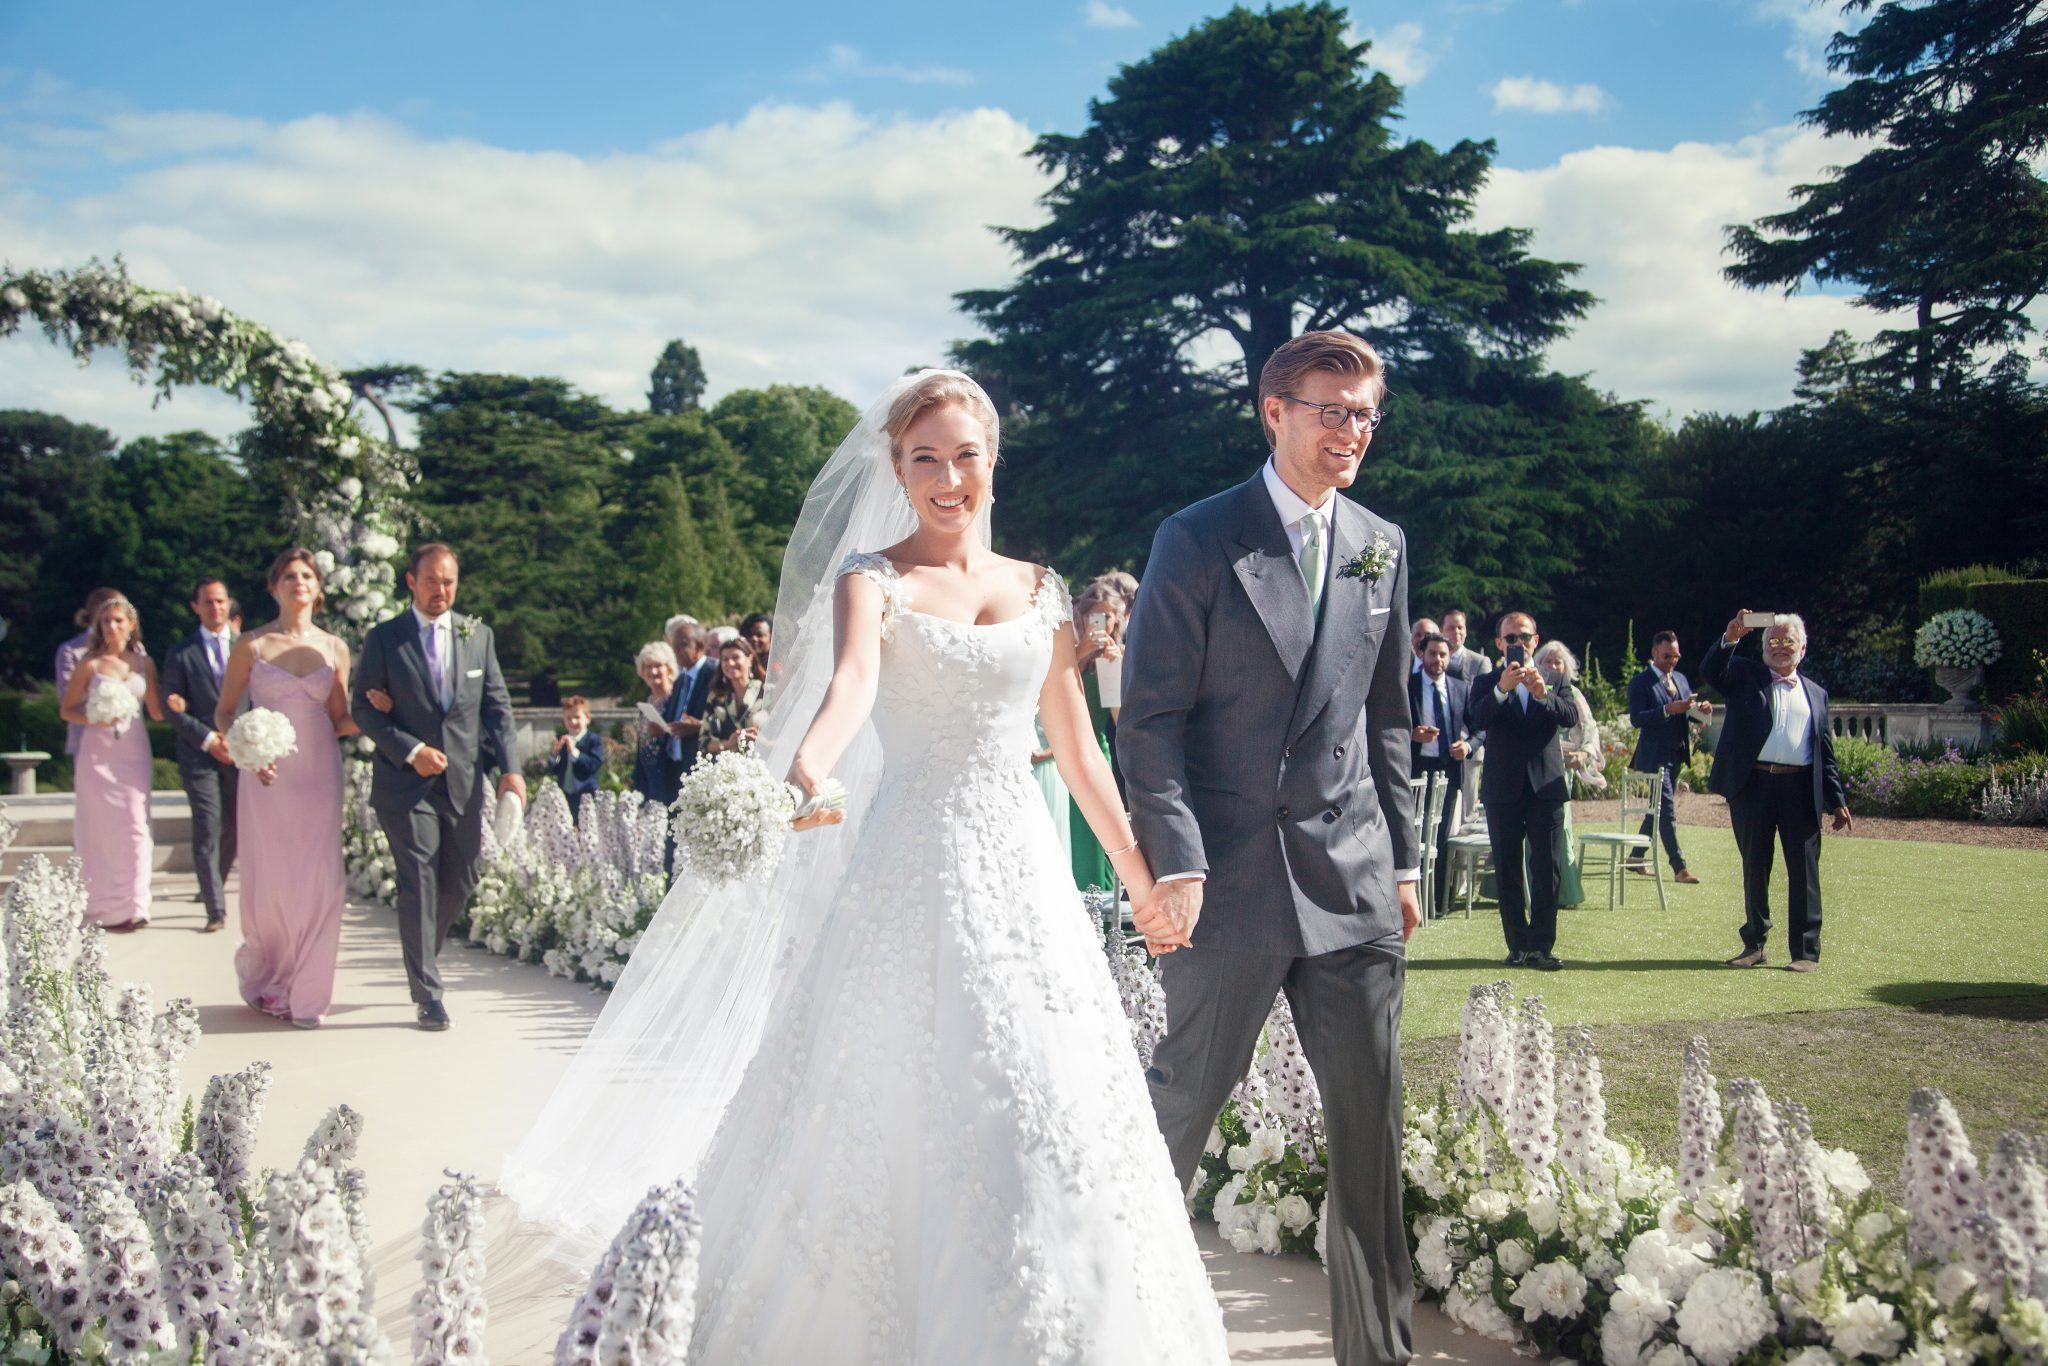 EVA'S BEAUTIFUL 3D FLORAL WEDDING DRESS AT HER GARDEN WEDDING